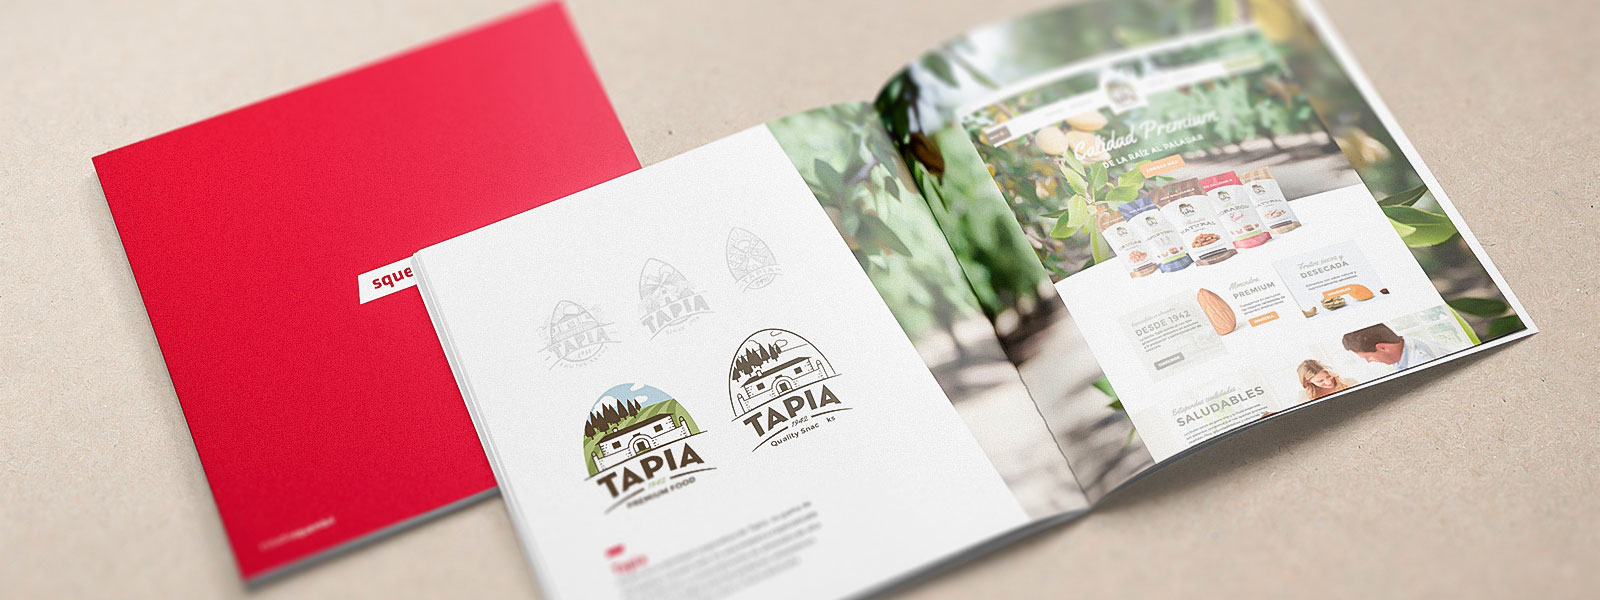 Identidad Corporativa diseño packaging Tapia